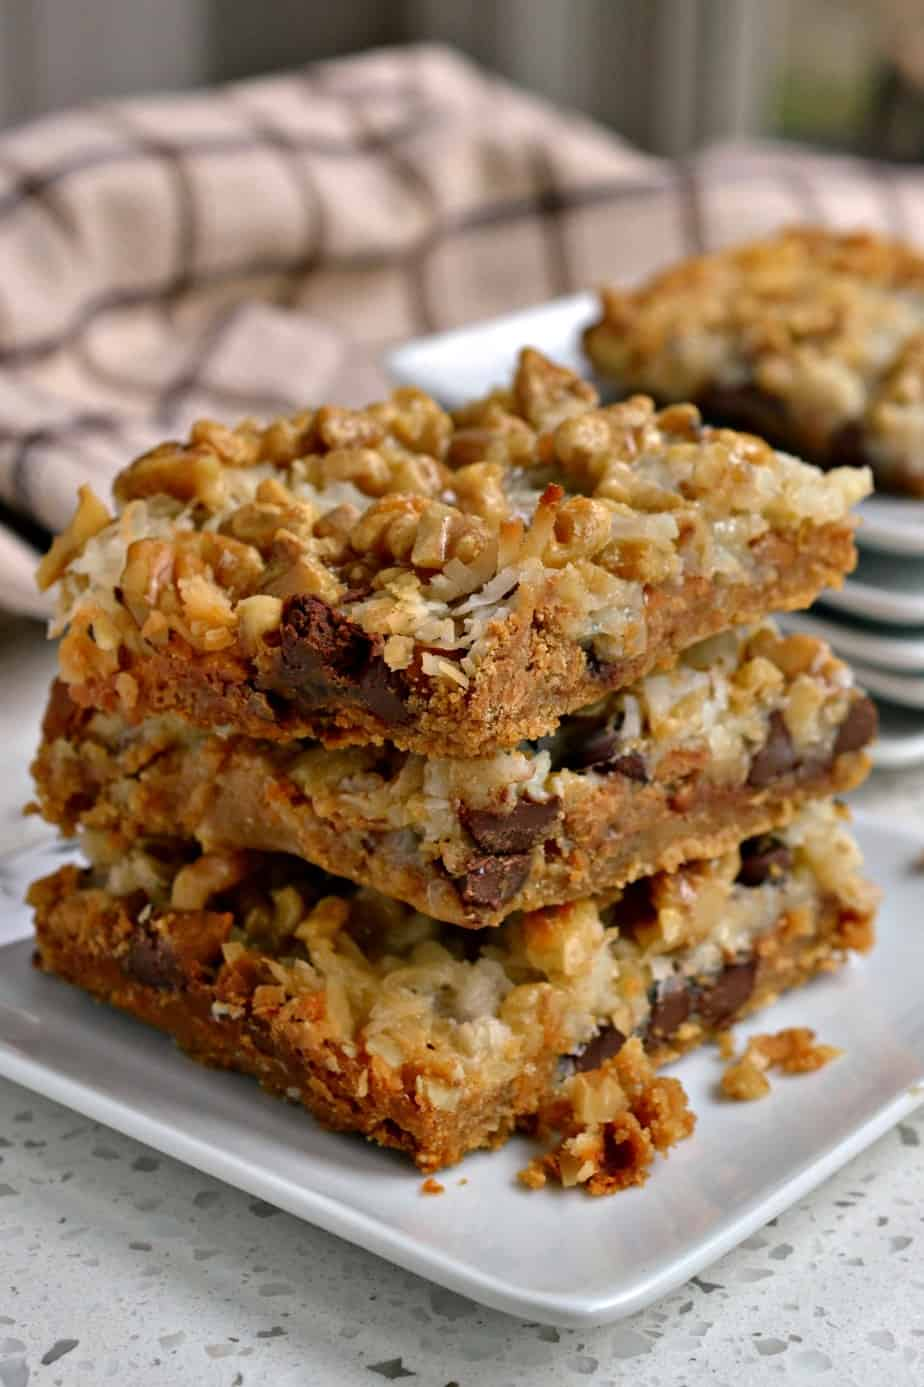 Scrumptious Magic Cookie Bars are loaded with chocolate chips, peanut butter chips, coconut, and walnuts.